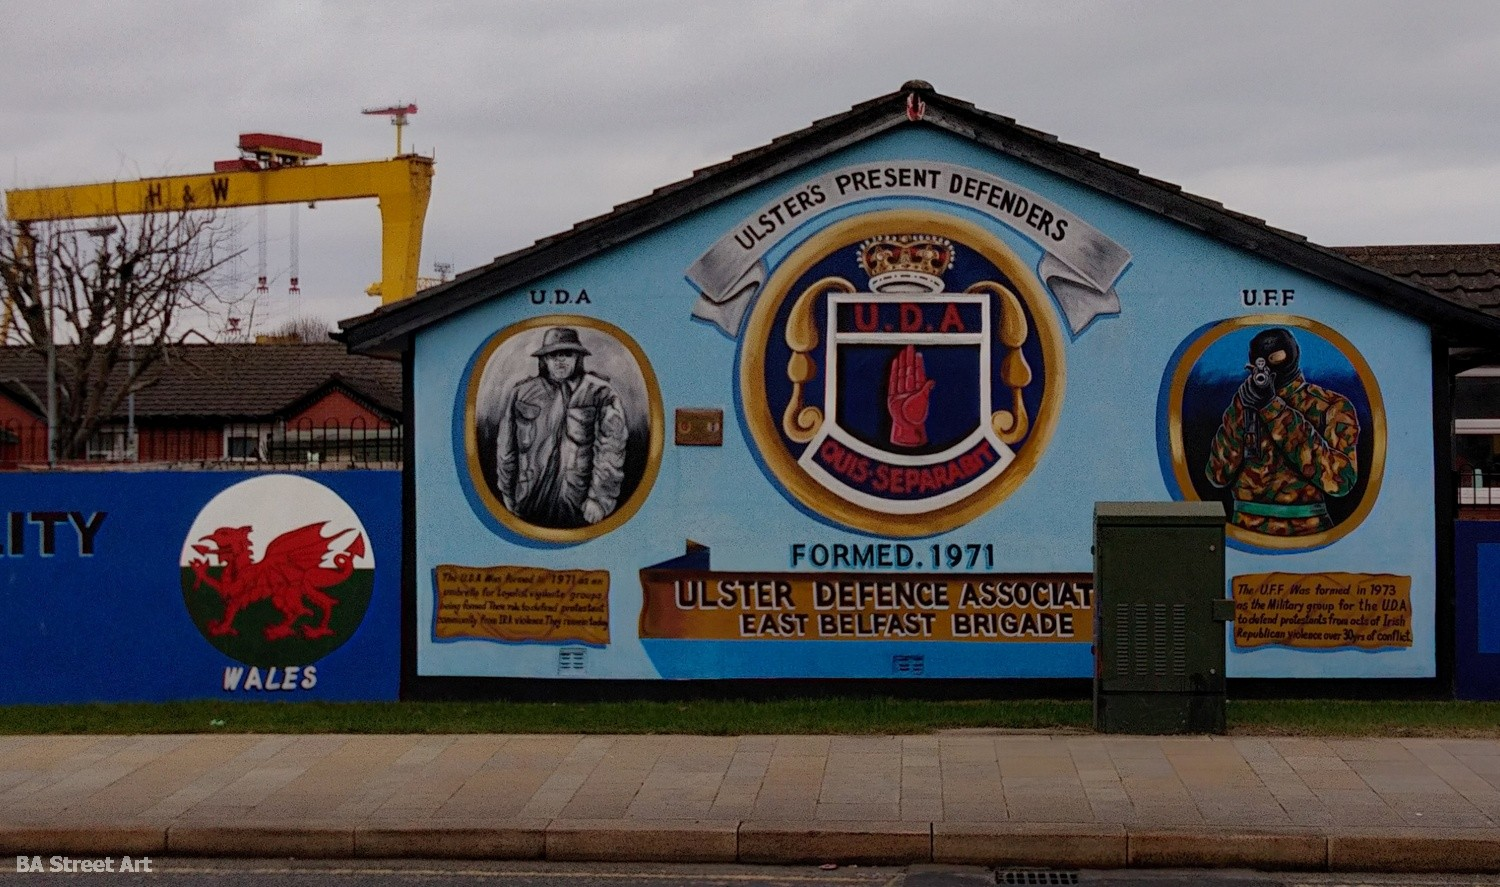 Political mural protestant ulster defence force UDF belfast UFF ulster freedom fighters